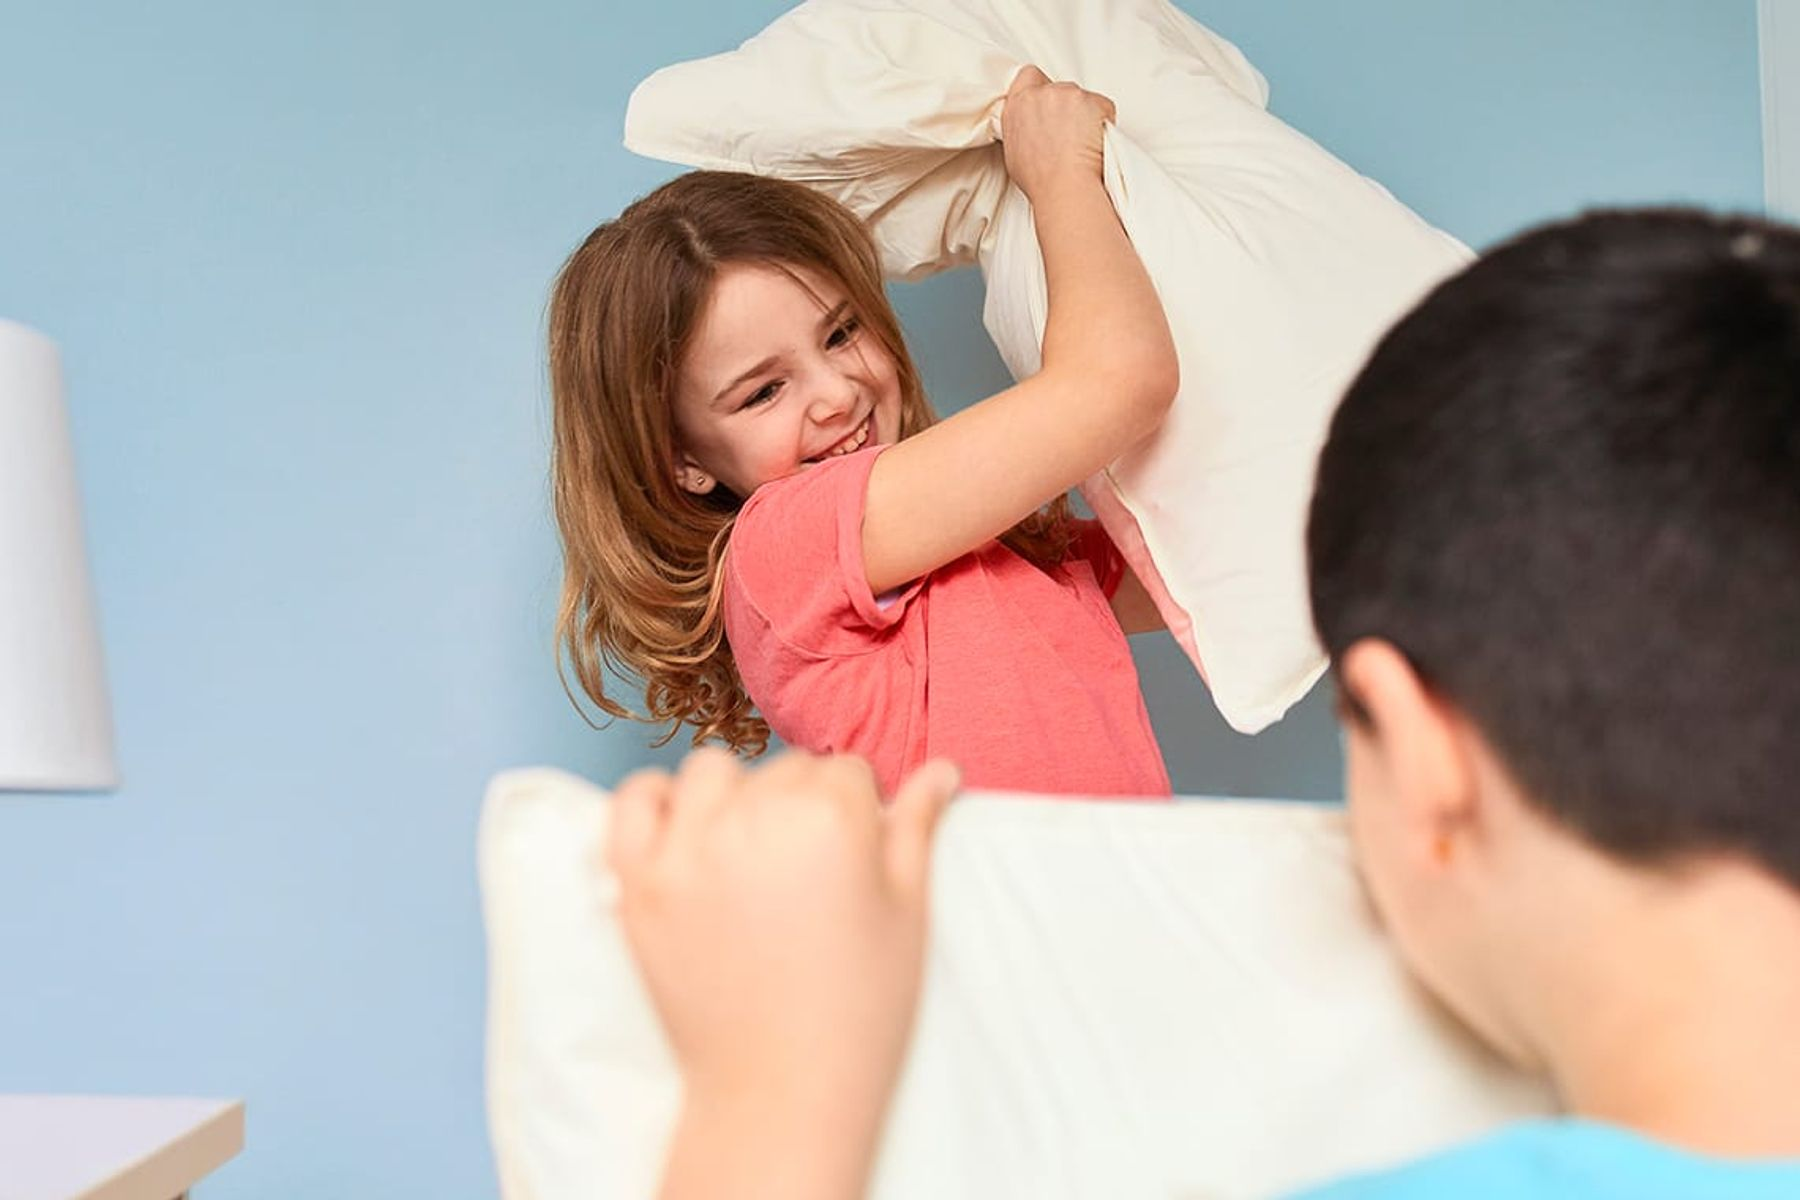 Indoor fun for kids: how to build a fort with pillows and blankets